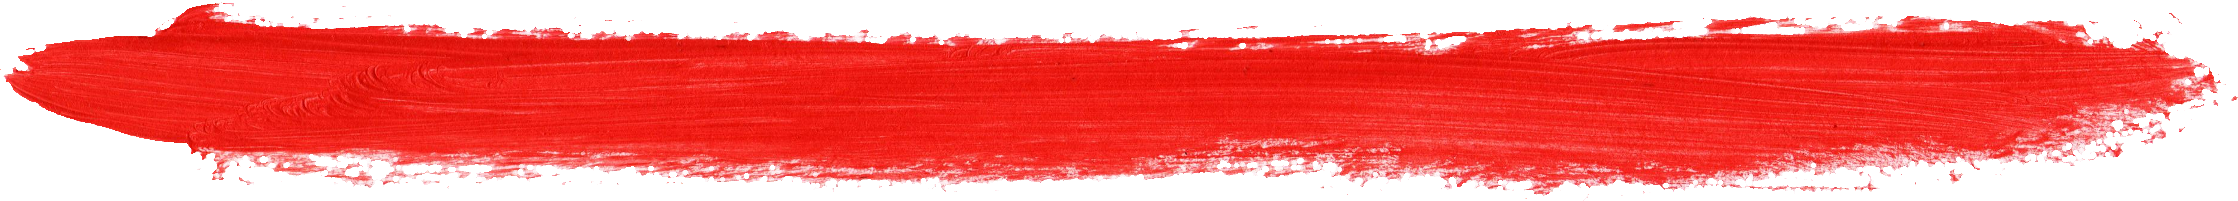 red-paint-brush-stroke-58.png